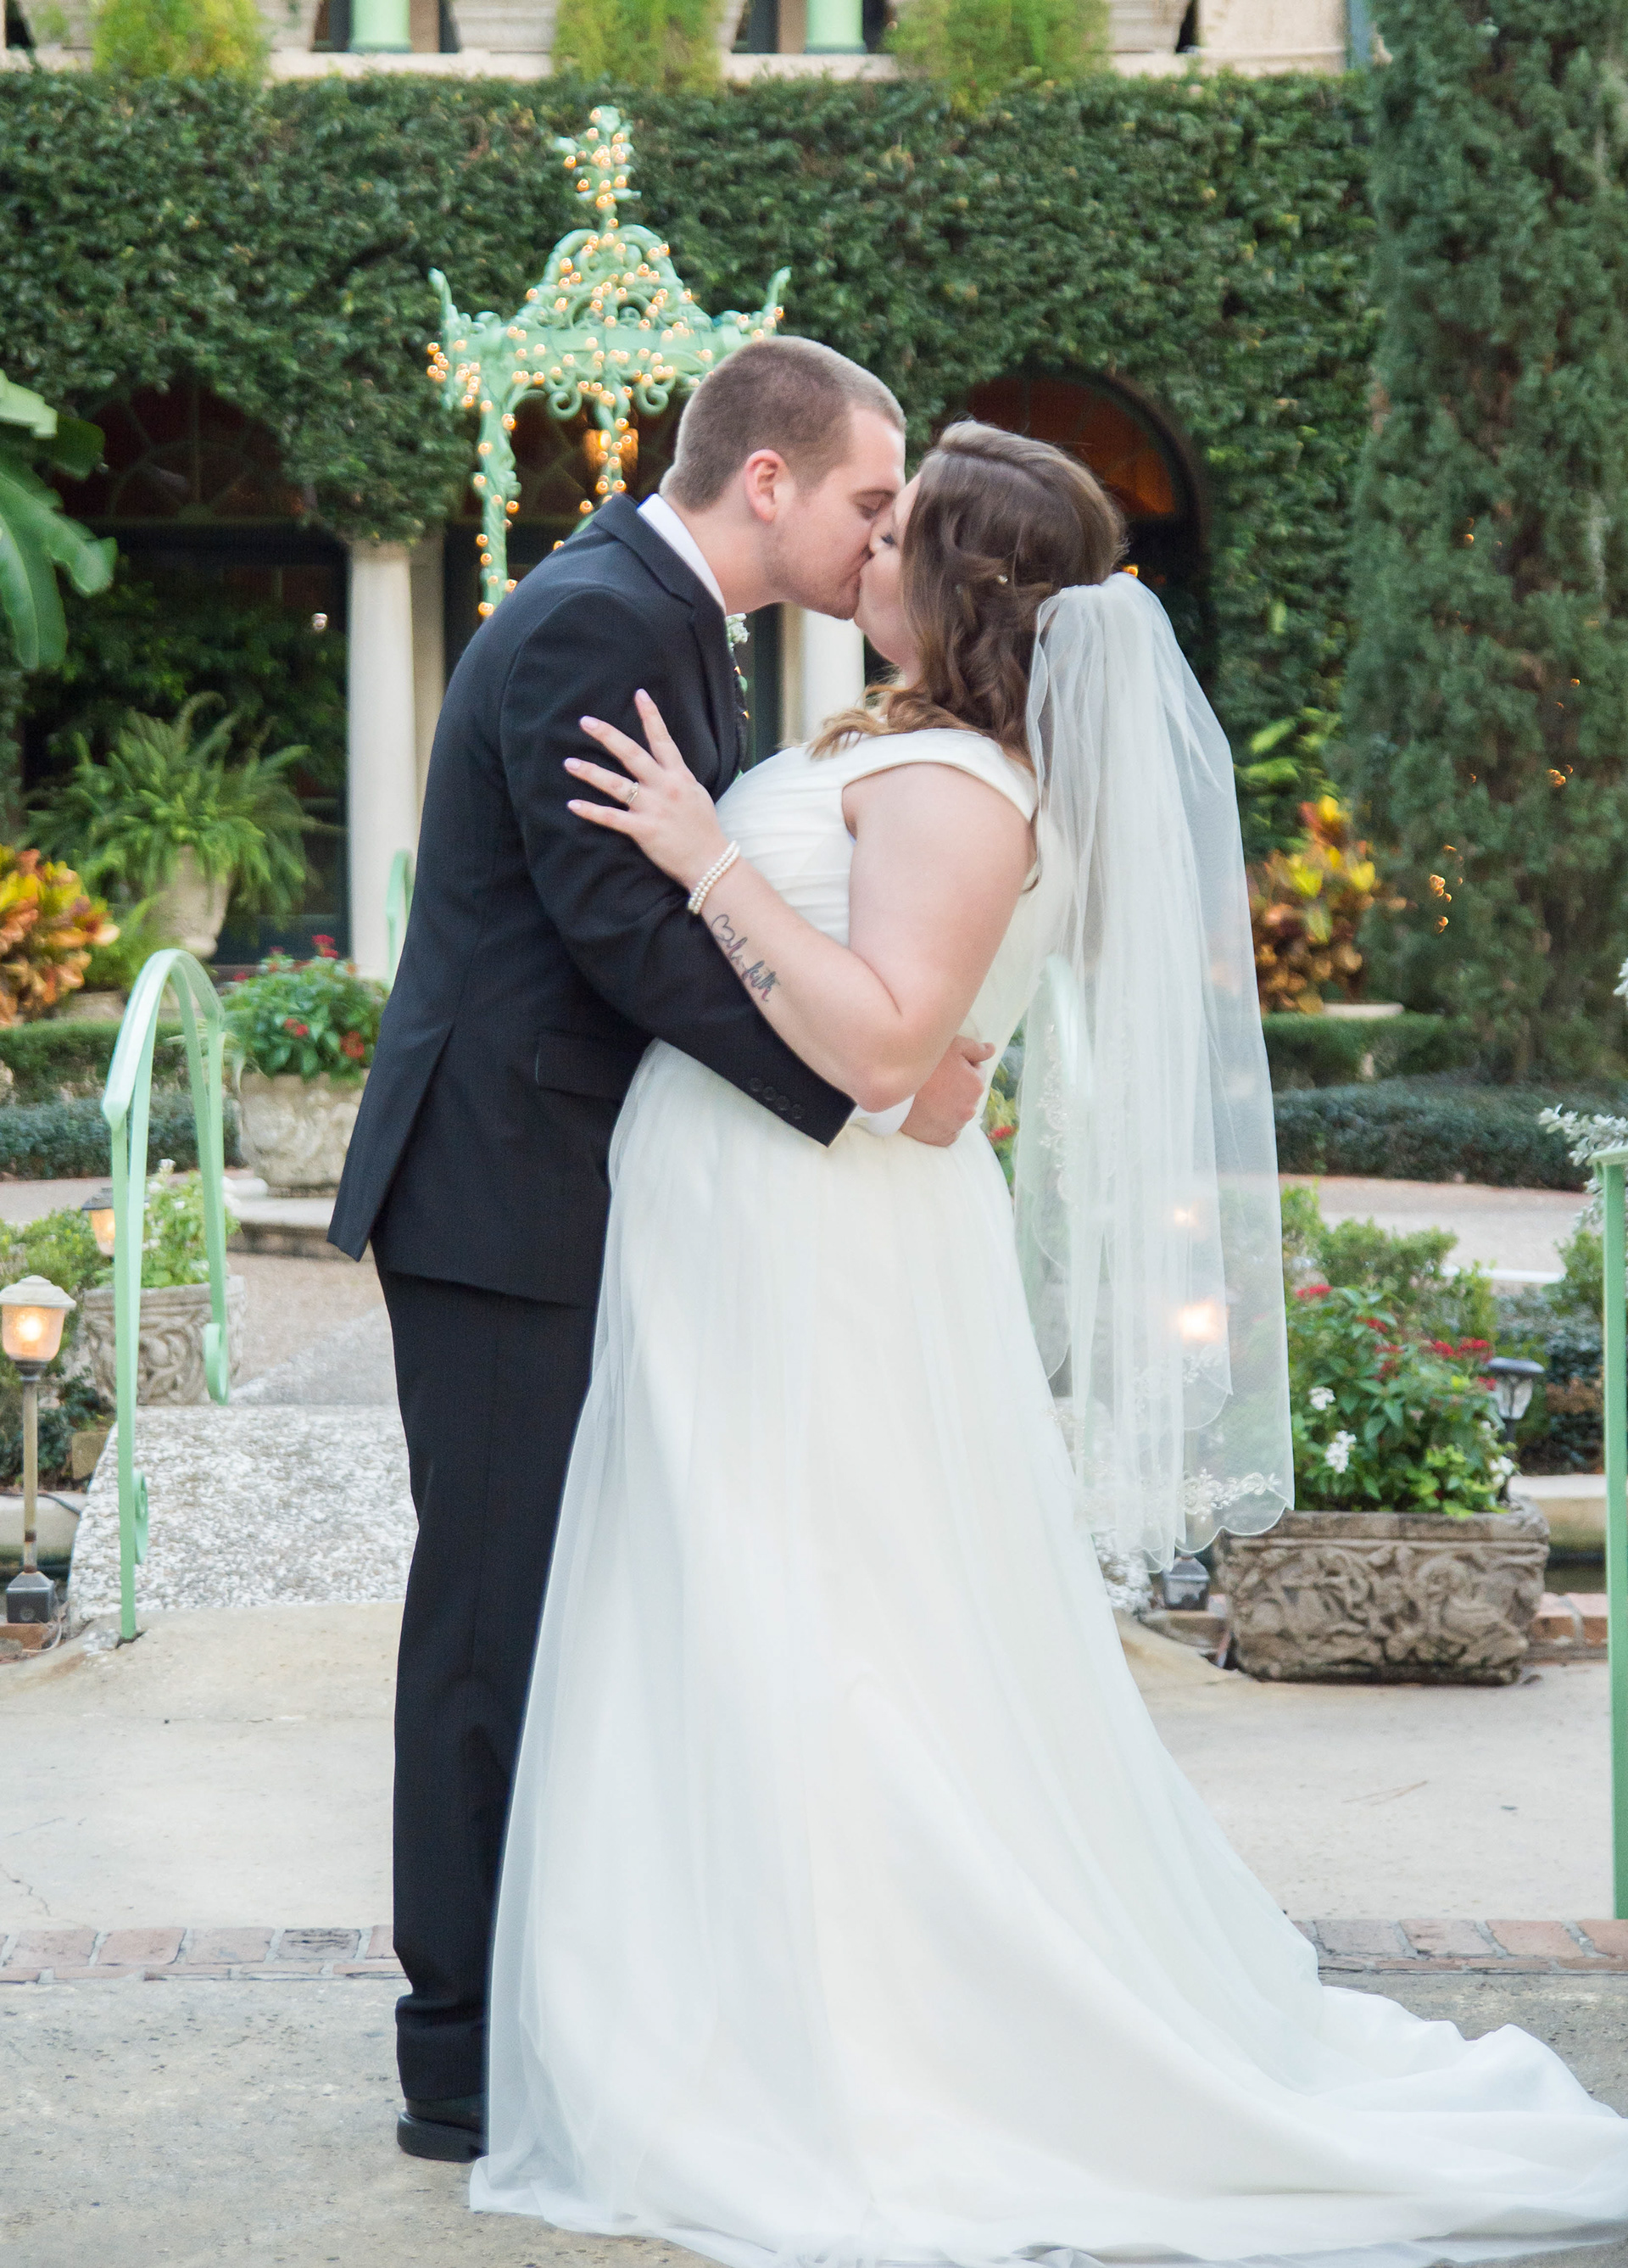 ashley michelle photography jacksonville florida wedding photographer i really can t thank you enough for stopping by and for considering me for your wedding day i am based in jacksonville florida but i travel to the